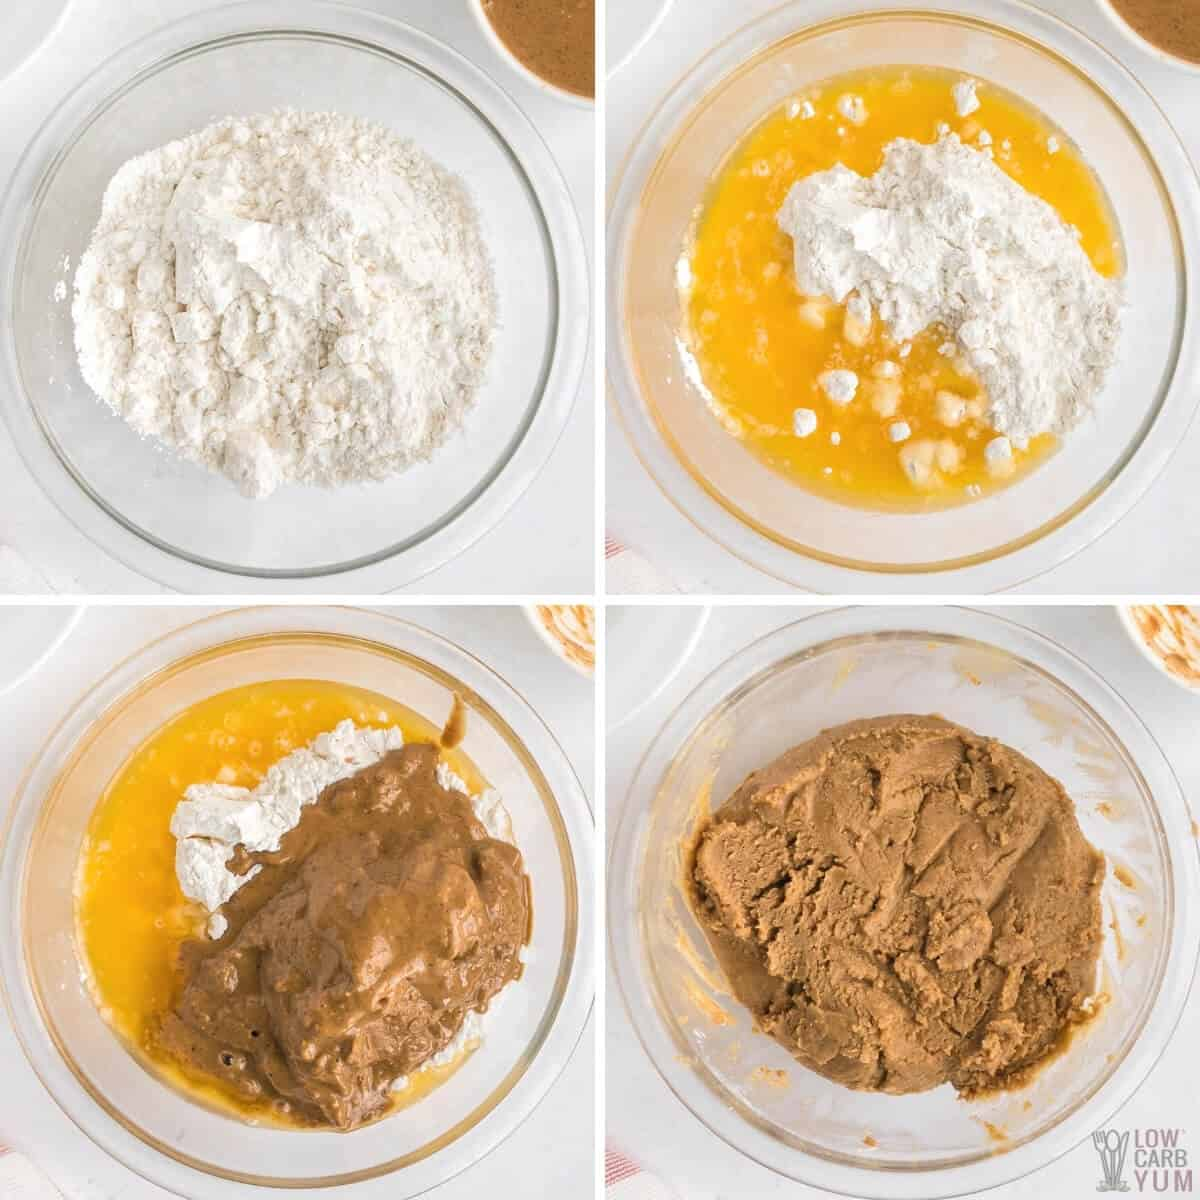 step by step photos to make keto peanut butter balls